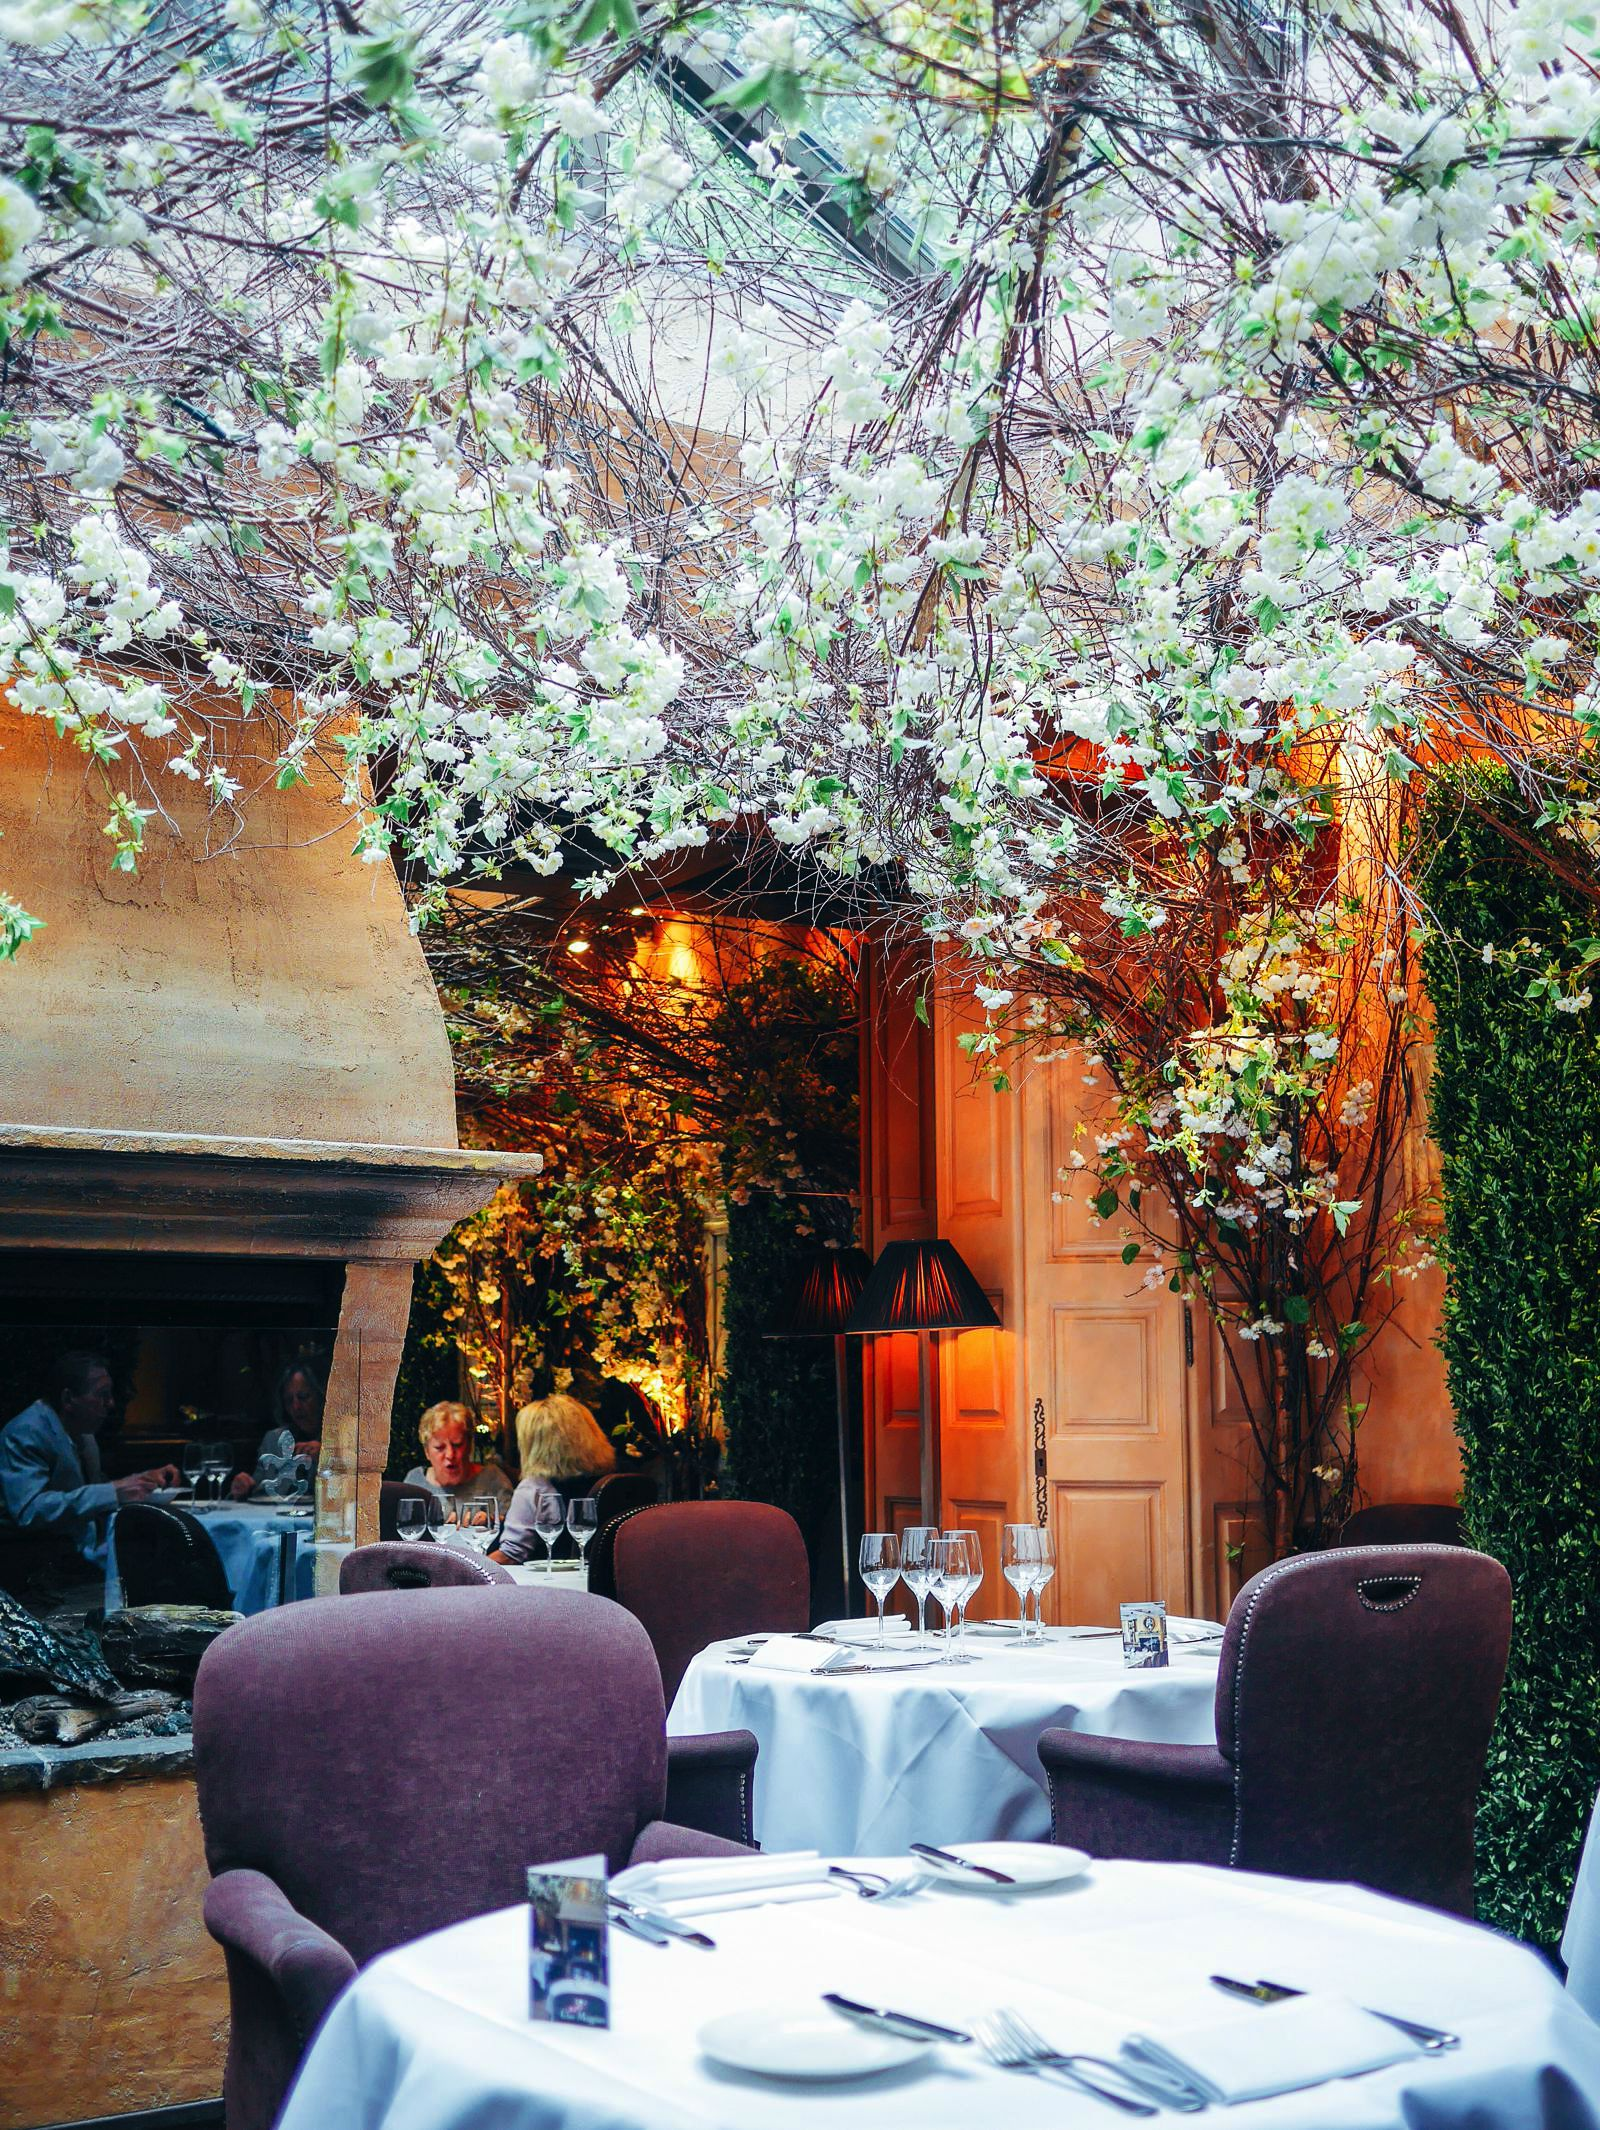 10 Best Things To Do In Covent Garden - London (28)